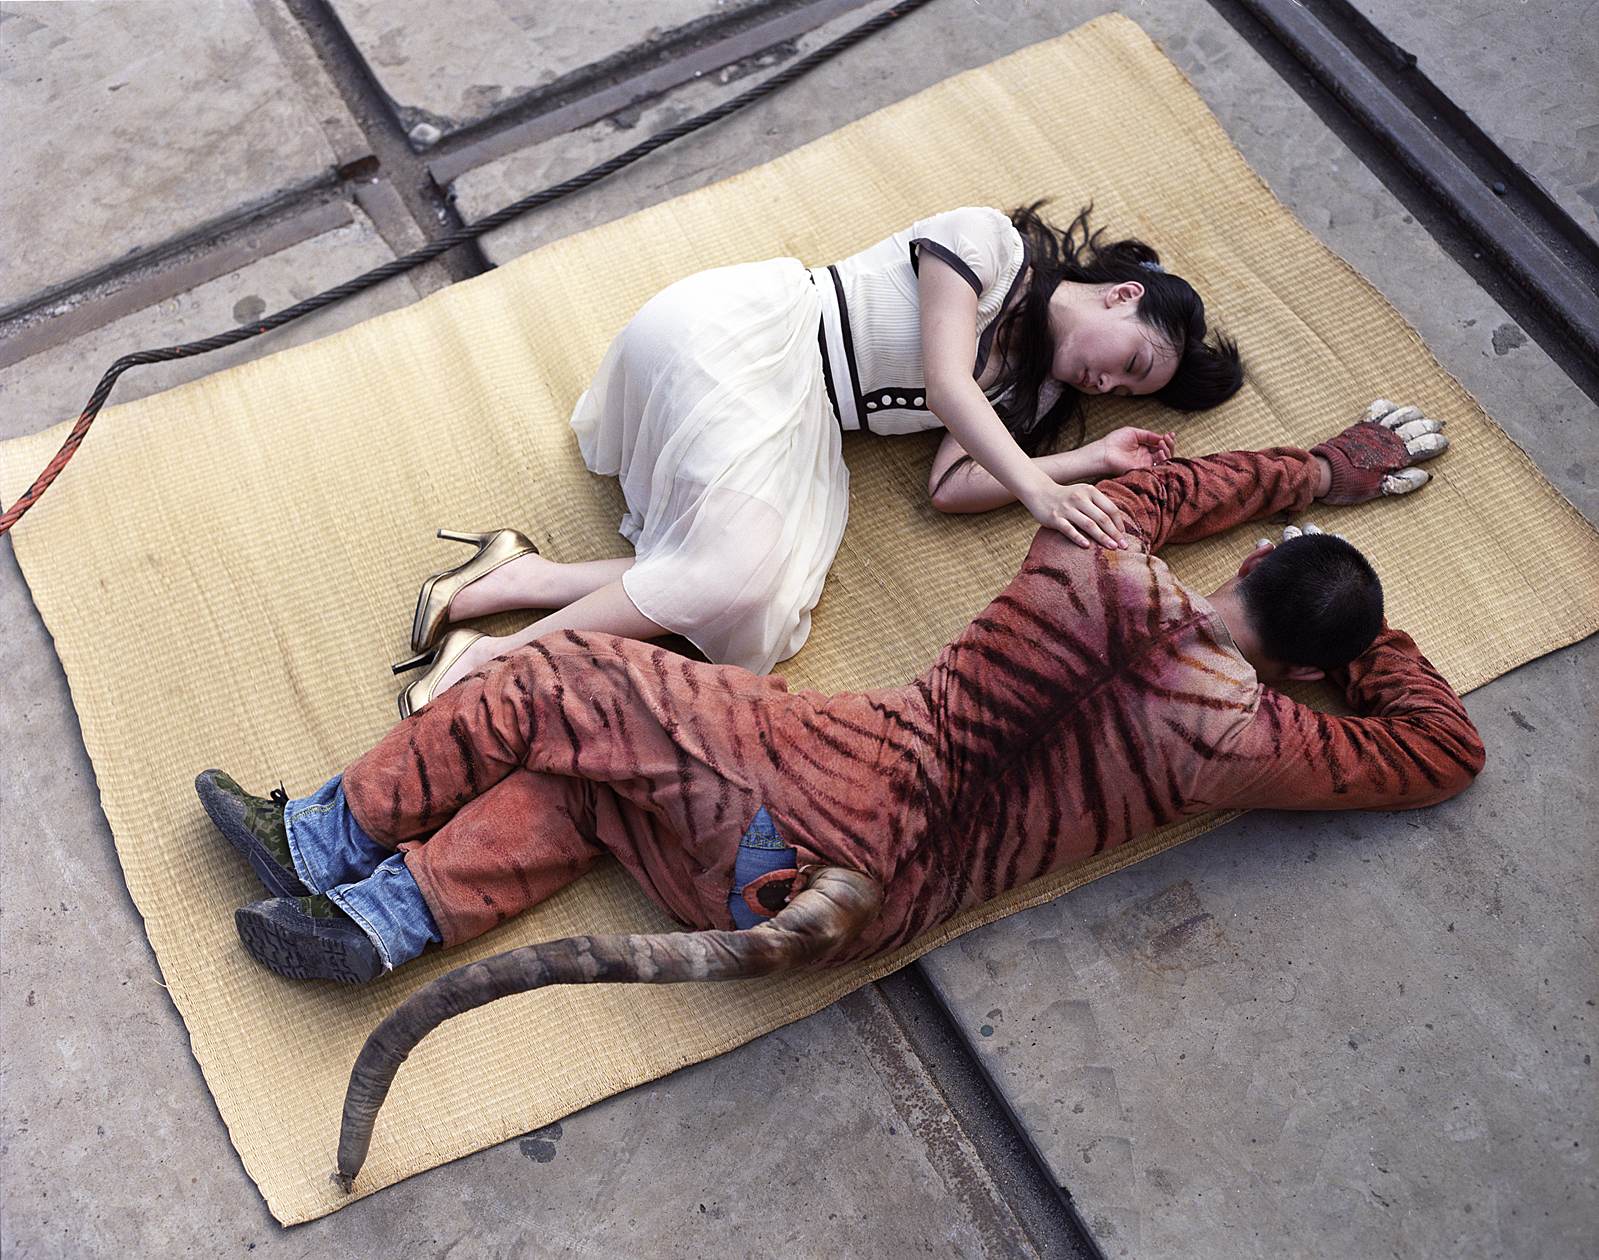 Patty Chang  Linyi and Tiger,  2007 Digital c-print, 102 x 127 cm